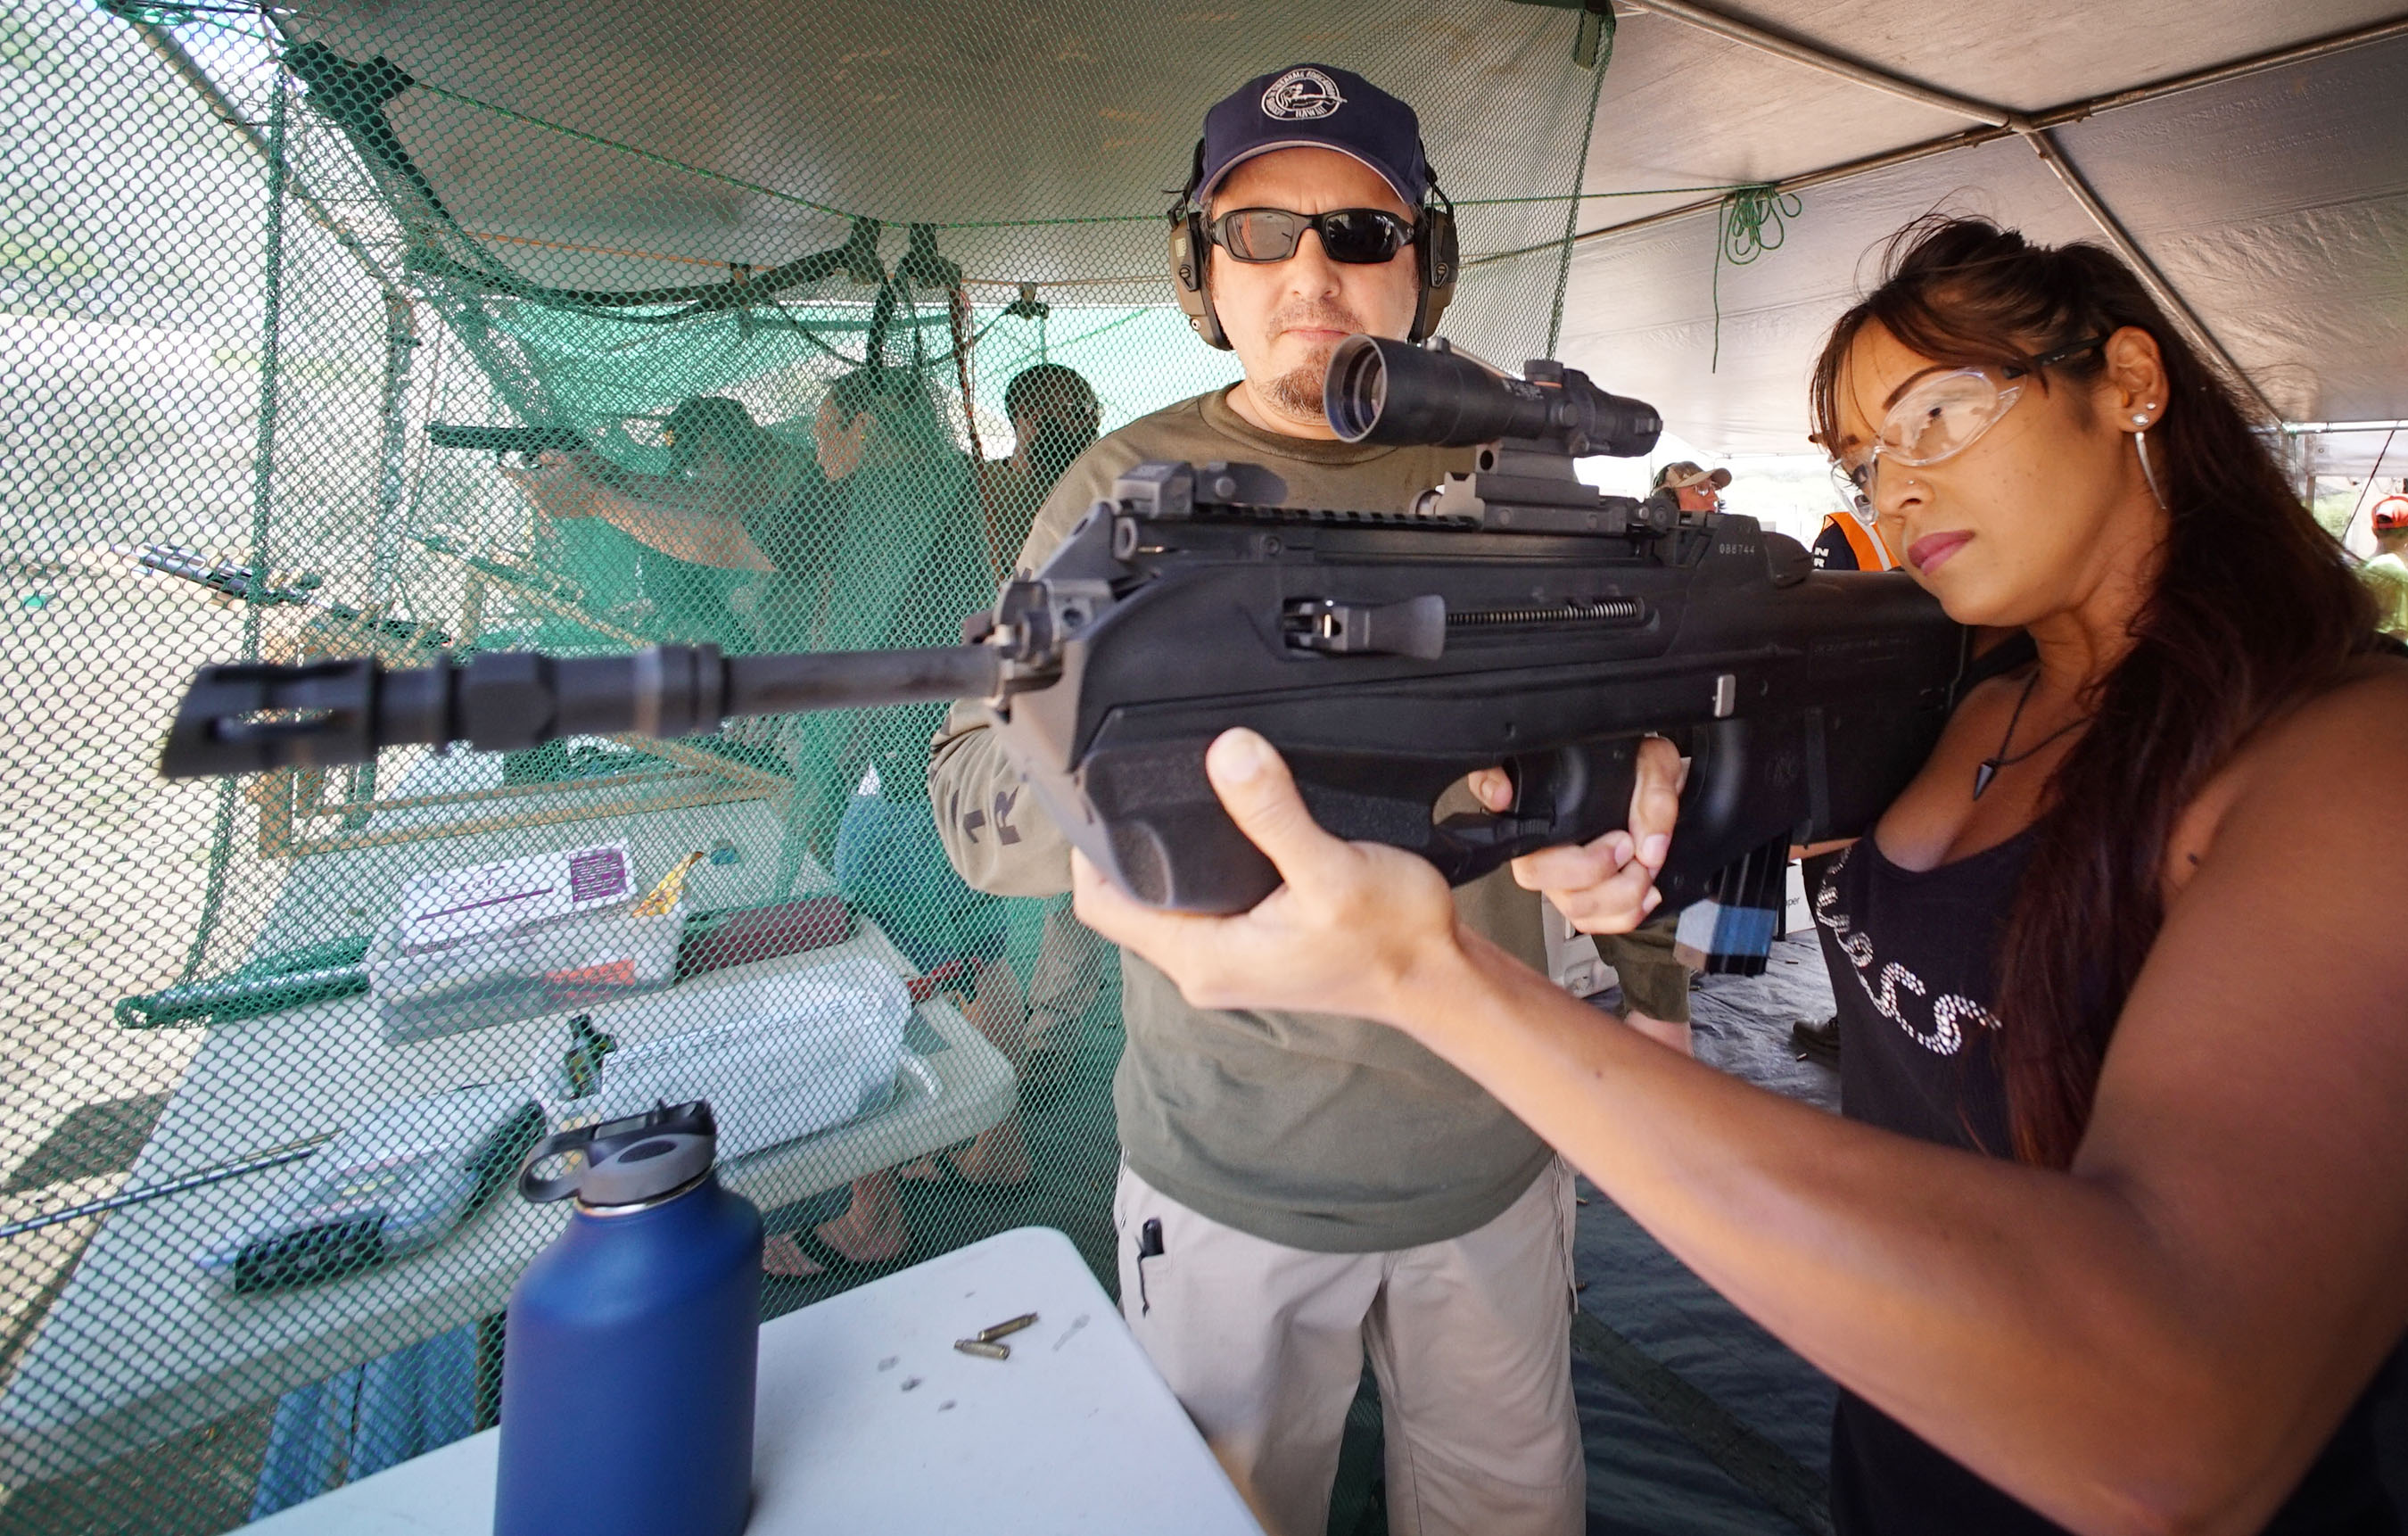 <p>Shara Martinez fired the FN Herstal FS2000 5.56mm rifle during the event, which featured National Rifle Association-certified instructors.</p>